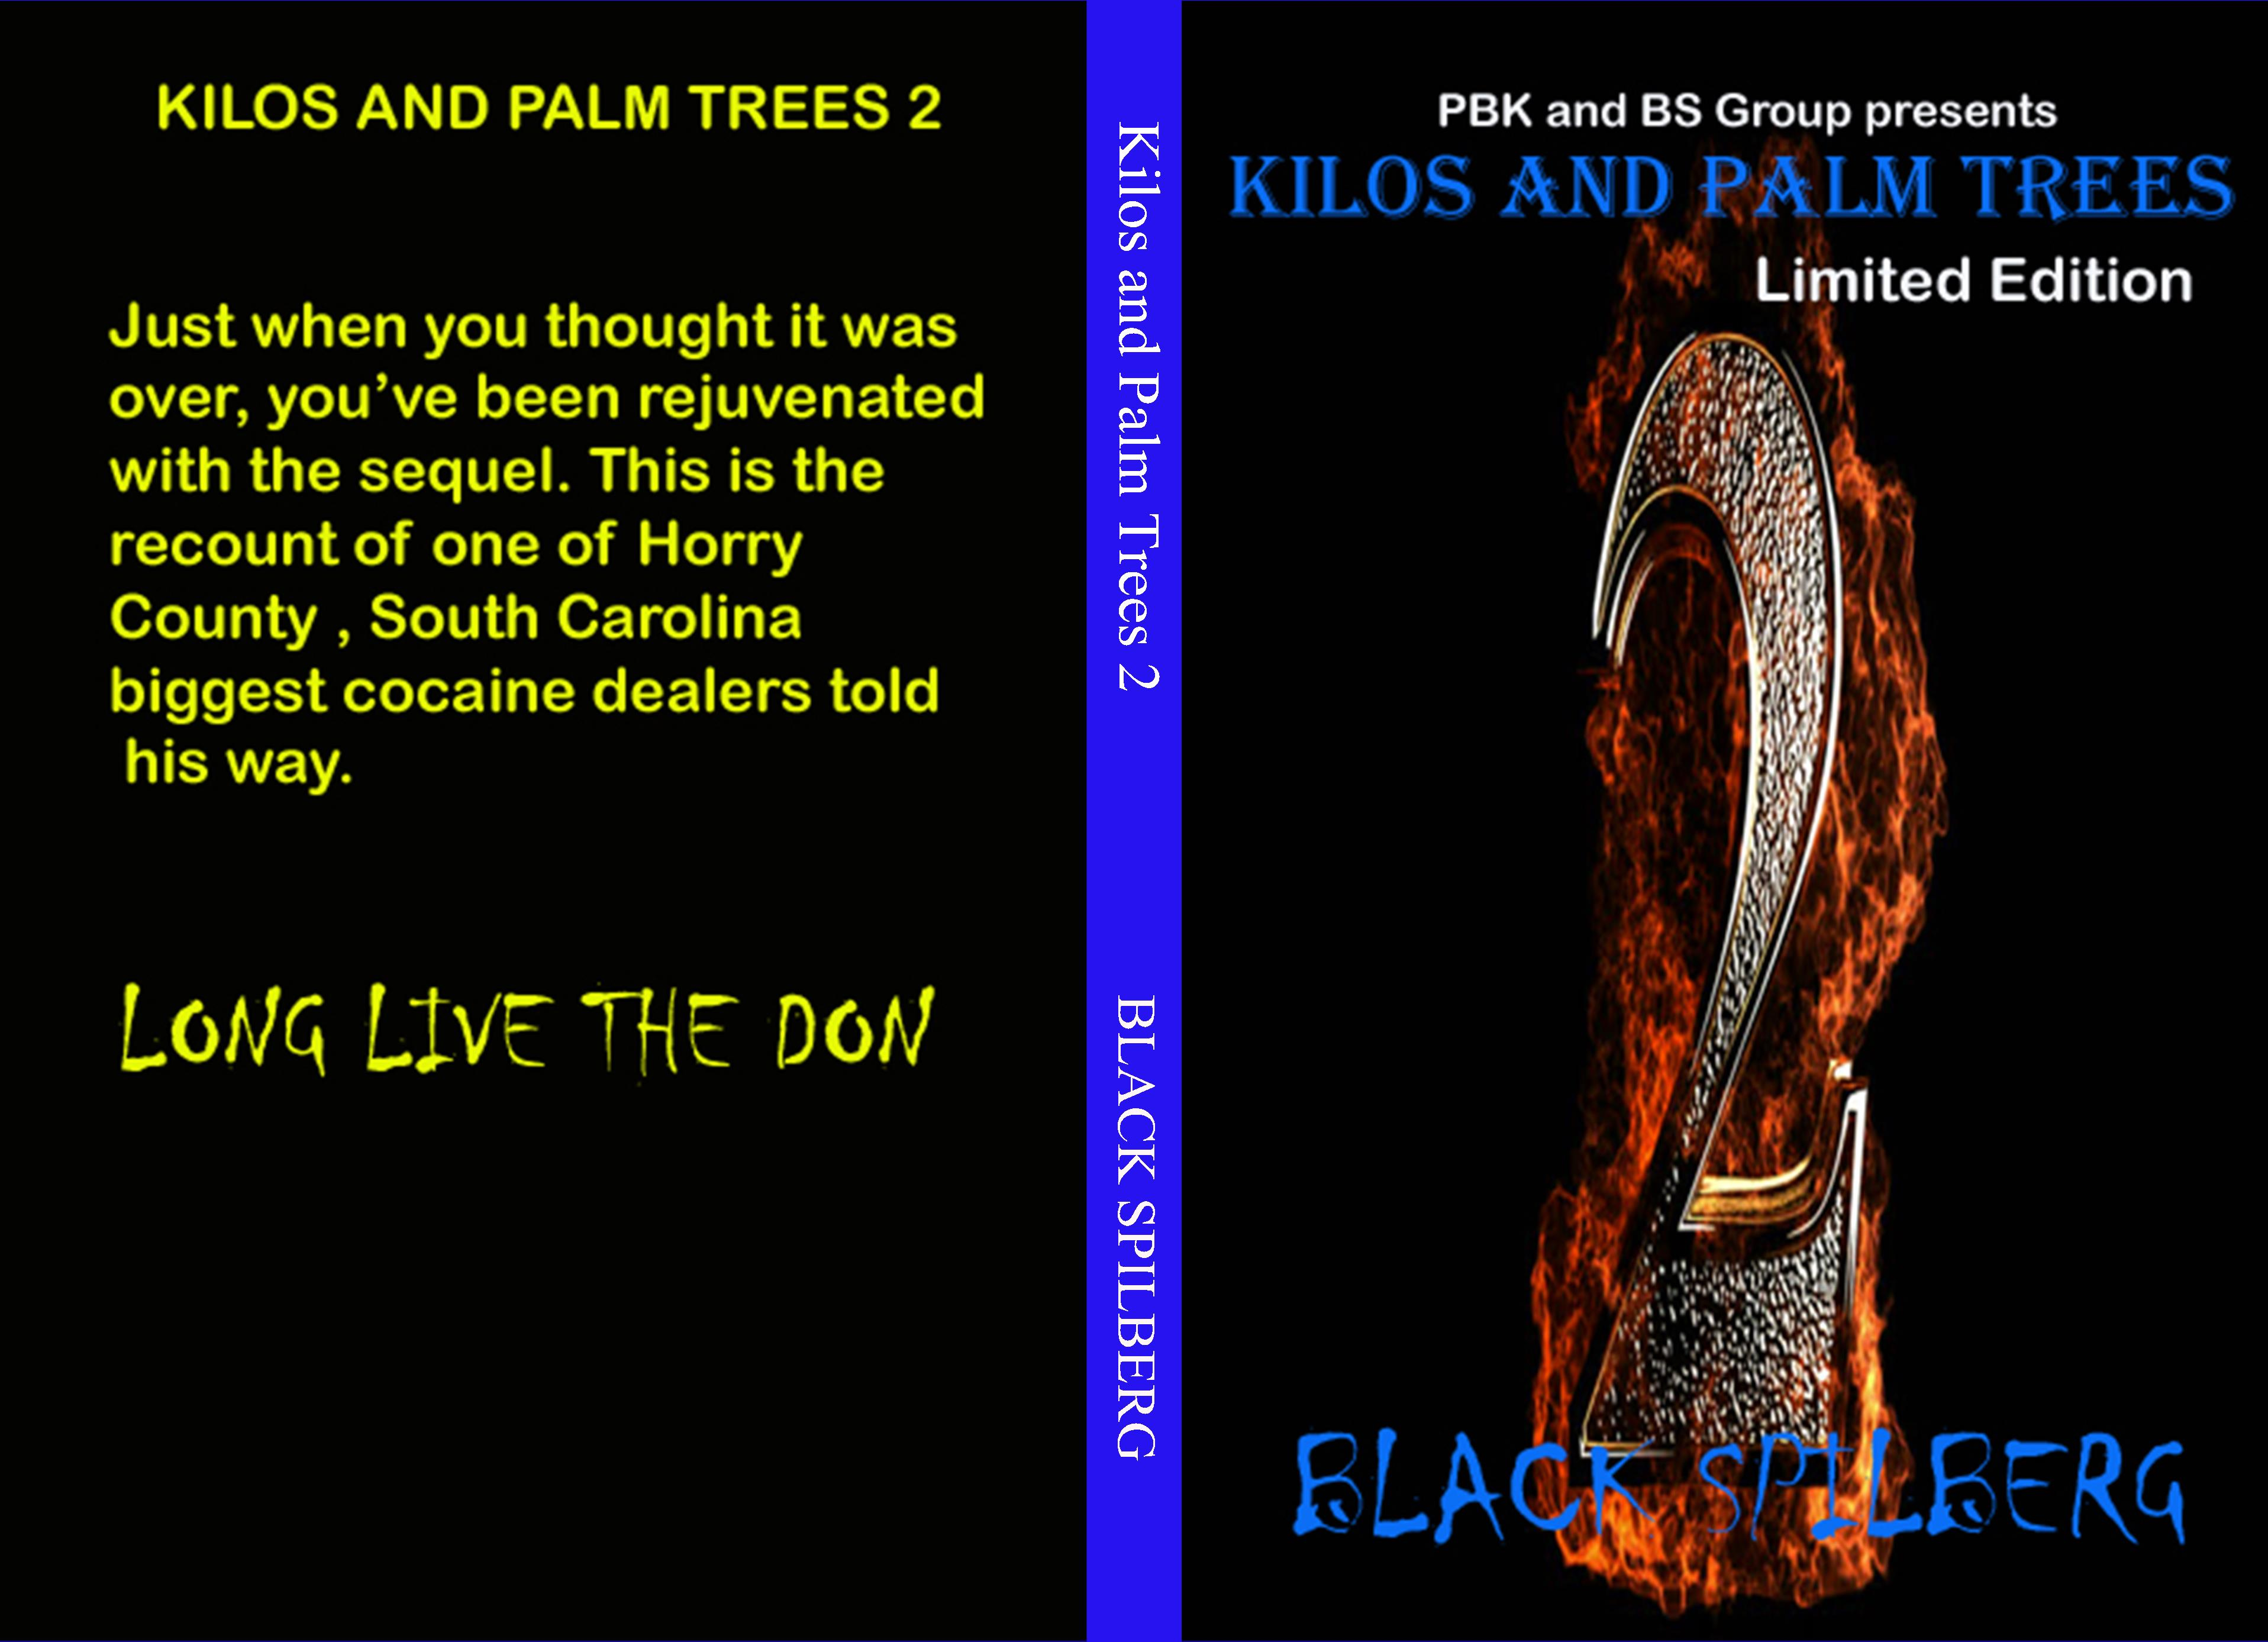 Kilos and Palm Trees 2 cover image